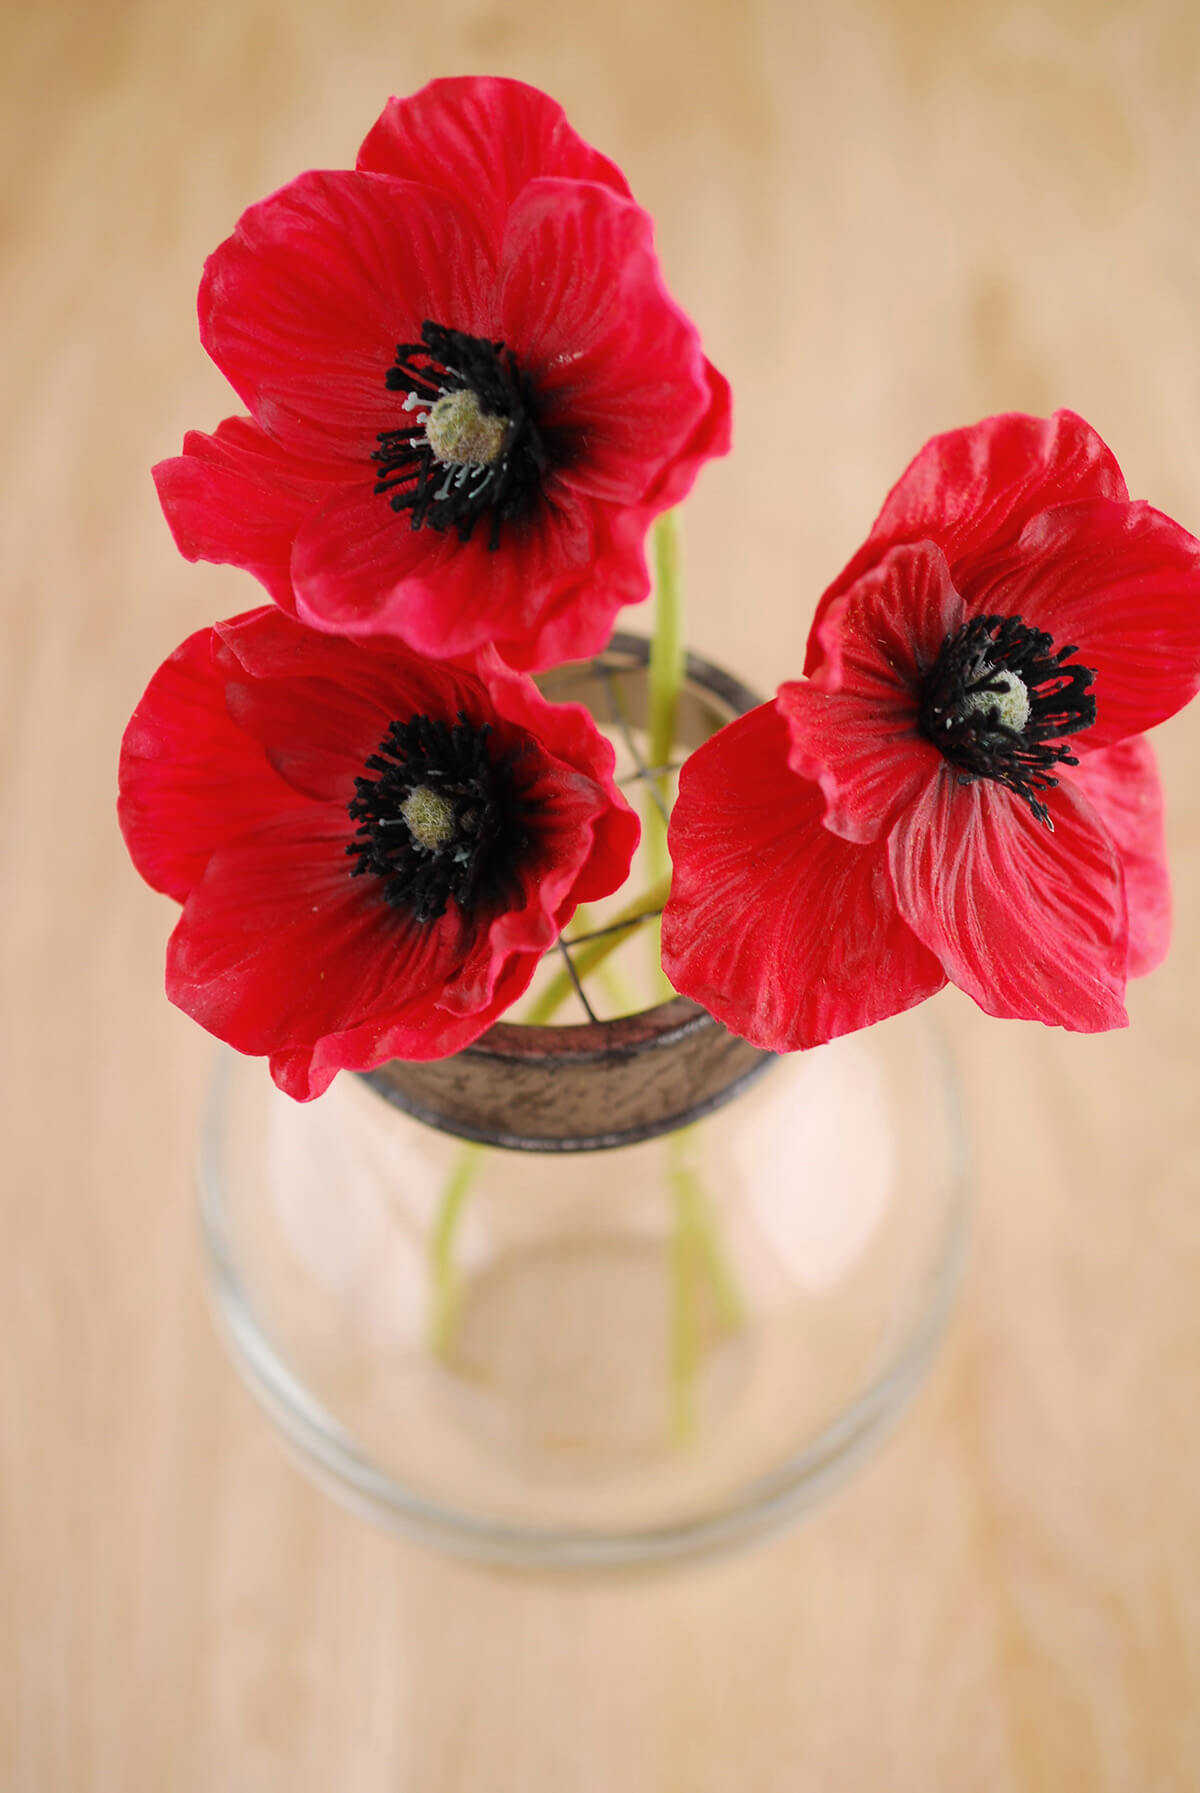 Free Photo Red Poppy Flower Outdoors Nature Park Free